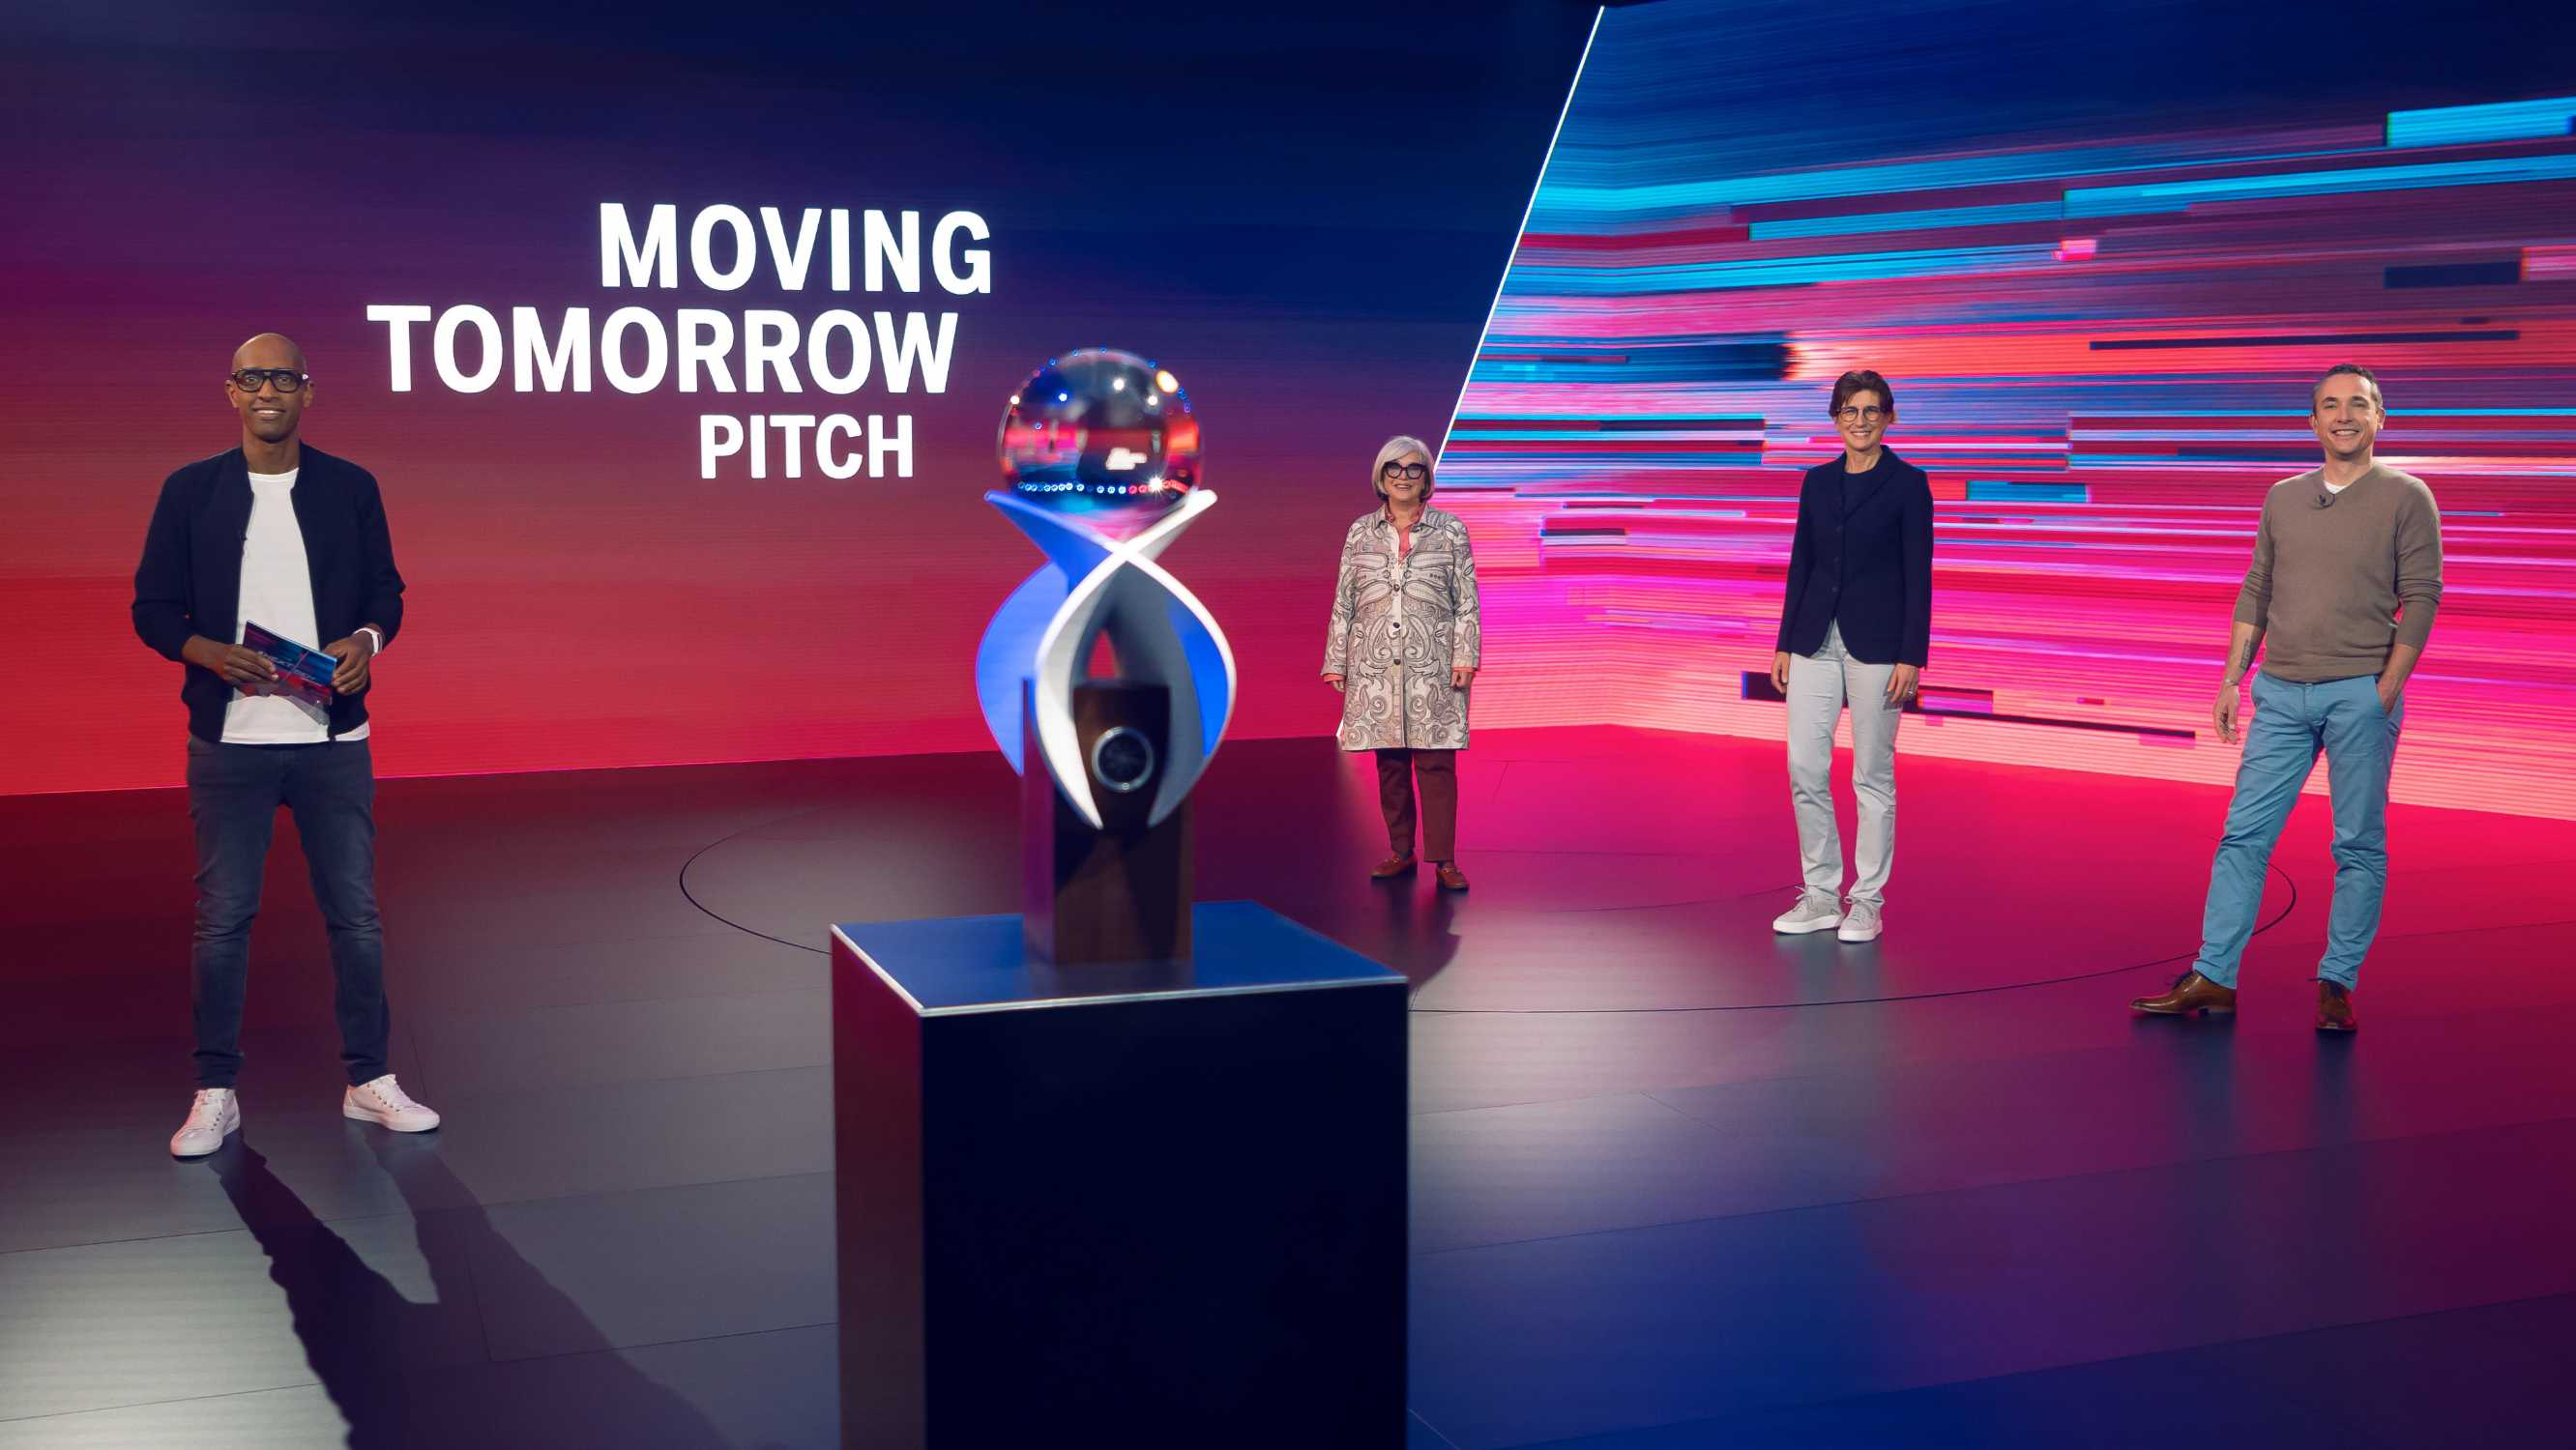 #NEXTGen Moving Tomorrow Pitches (from left to right): host Amiaz Habtu, Steffi Czerny (DLD founder), Ilka Horstmeier (Member of the Board of Management, BMW AG), Dr Andreas Rickert (CEO of Phineo) (11/2020)